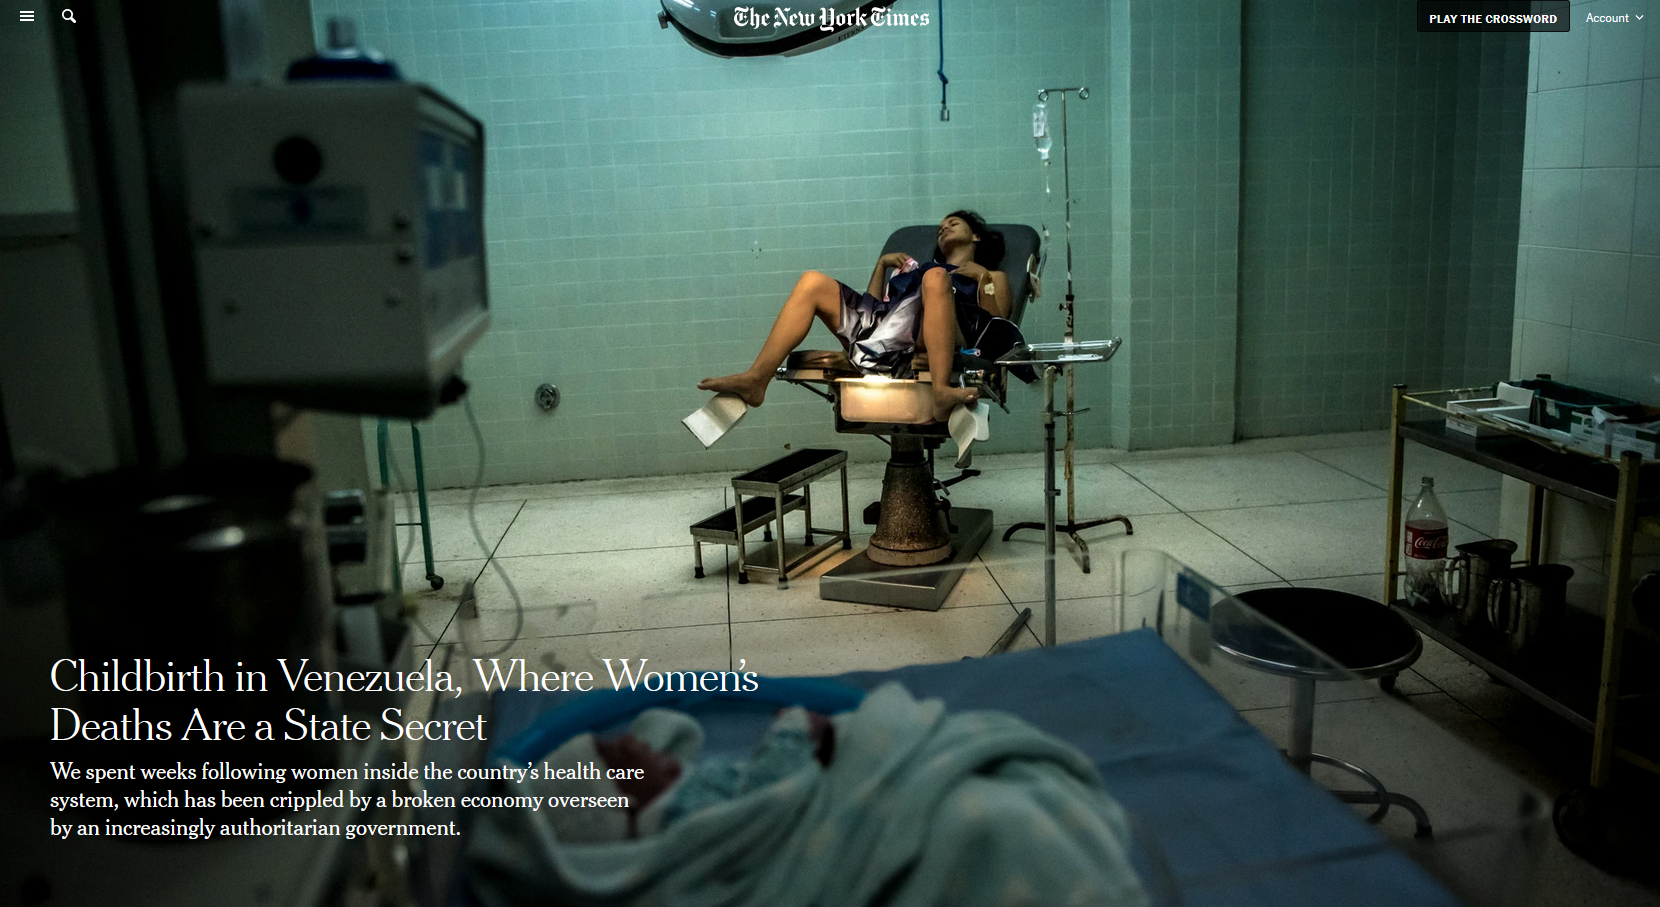 NYT: Childbirth in Venezuela, Where Women's Deaths Are a State Secret